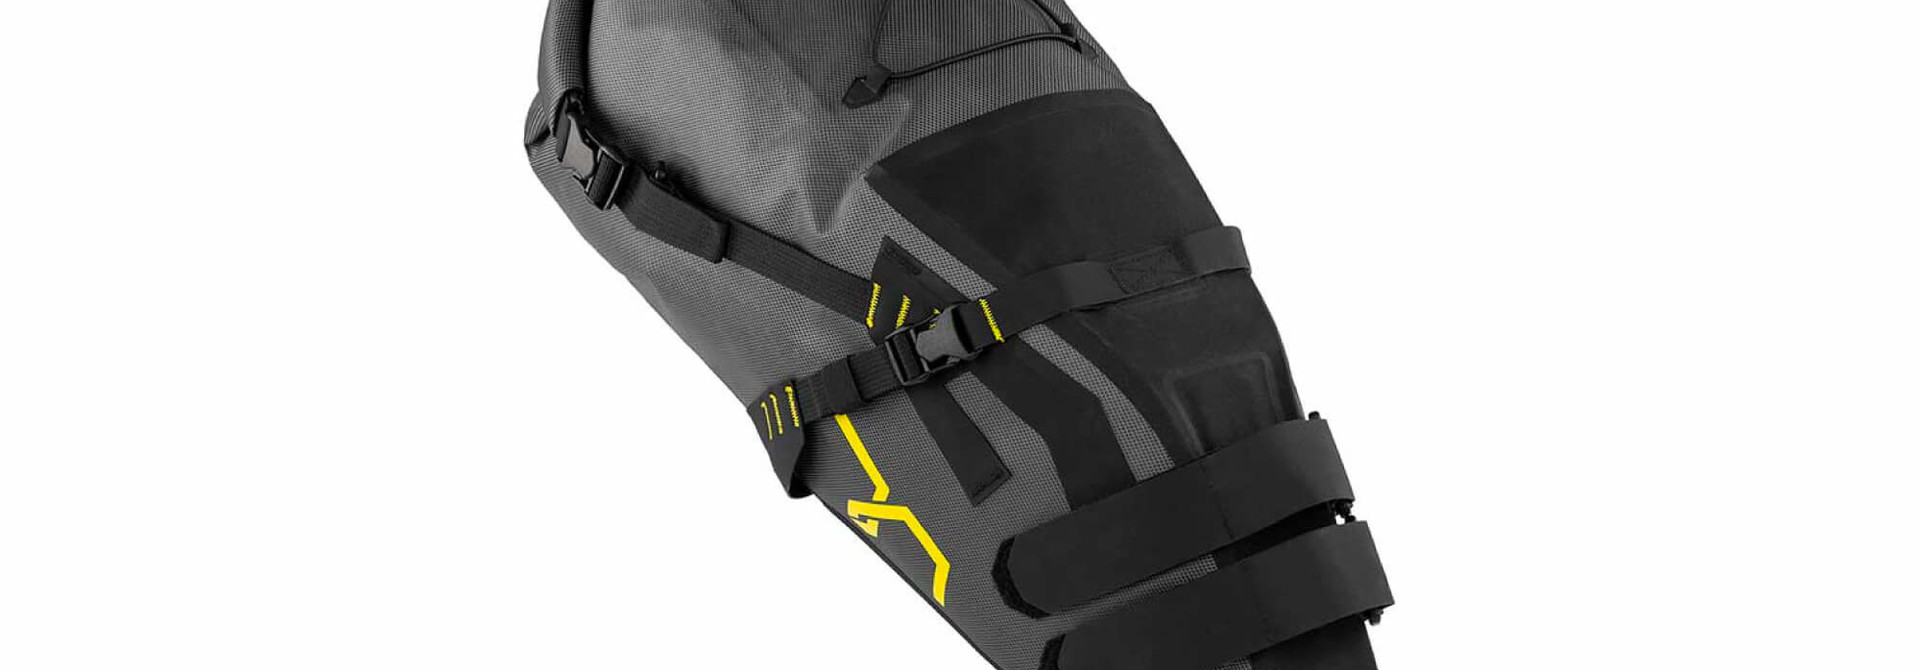 Expedition Saddle Pack 17 L